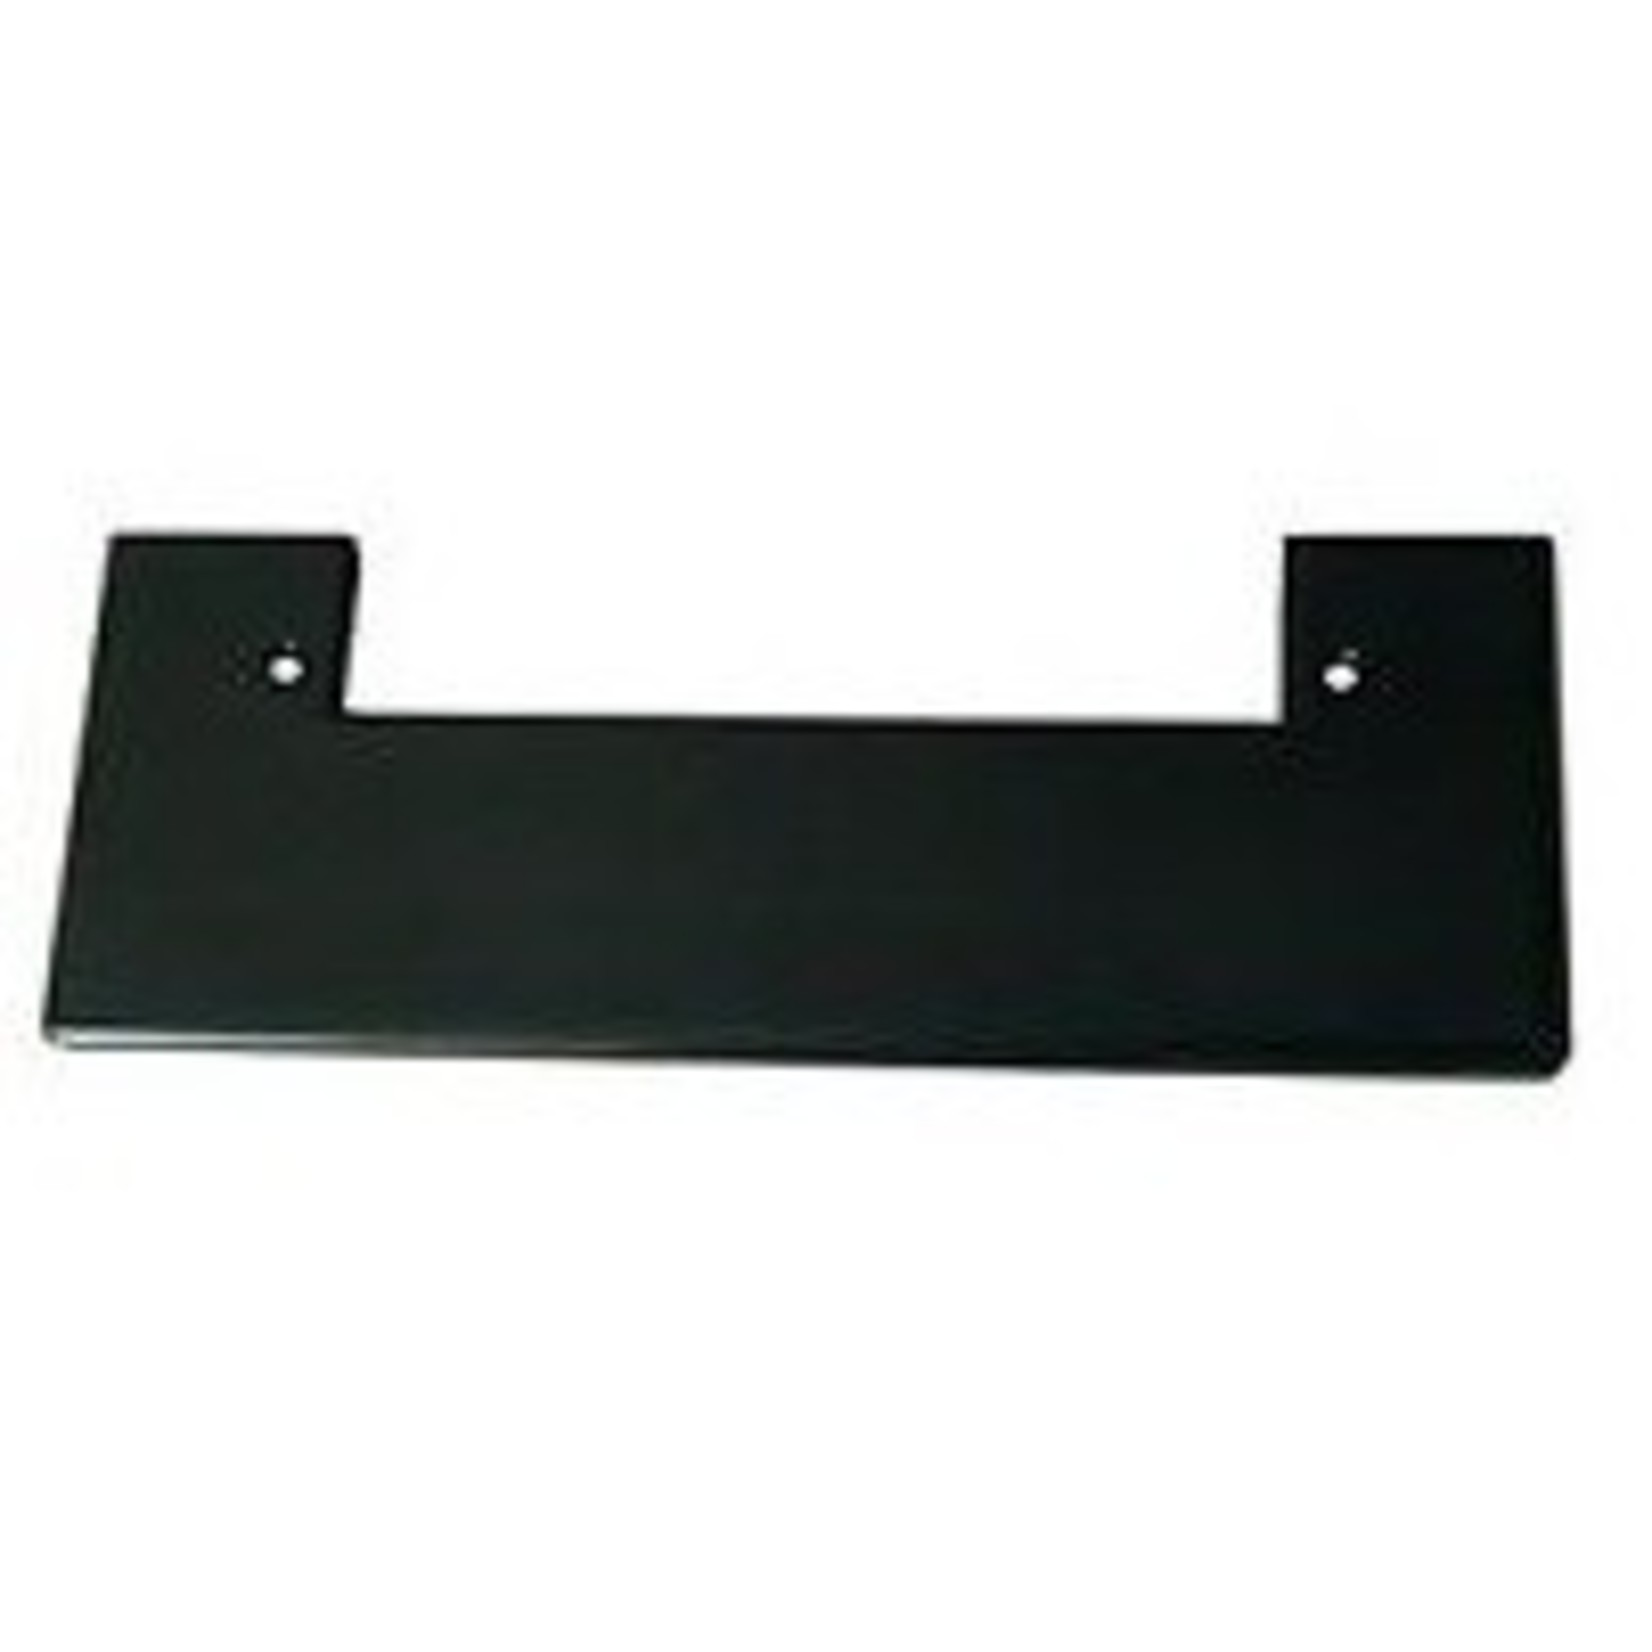 BEAM Central Vacuum VacPan Trim Plate - Black